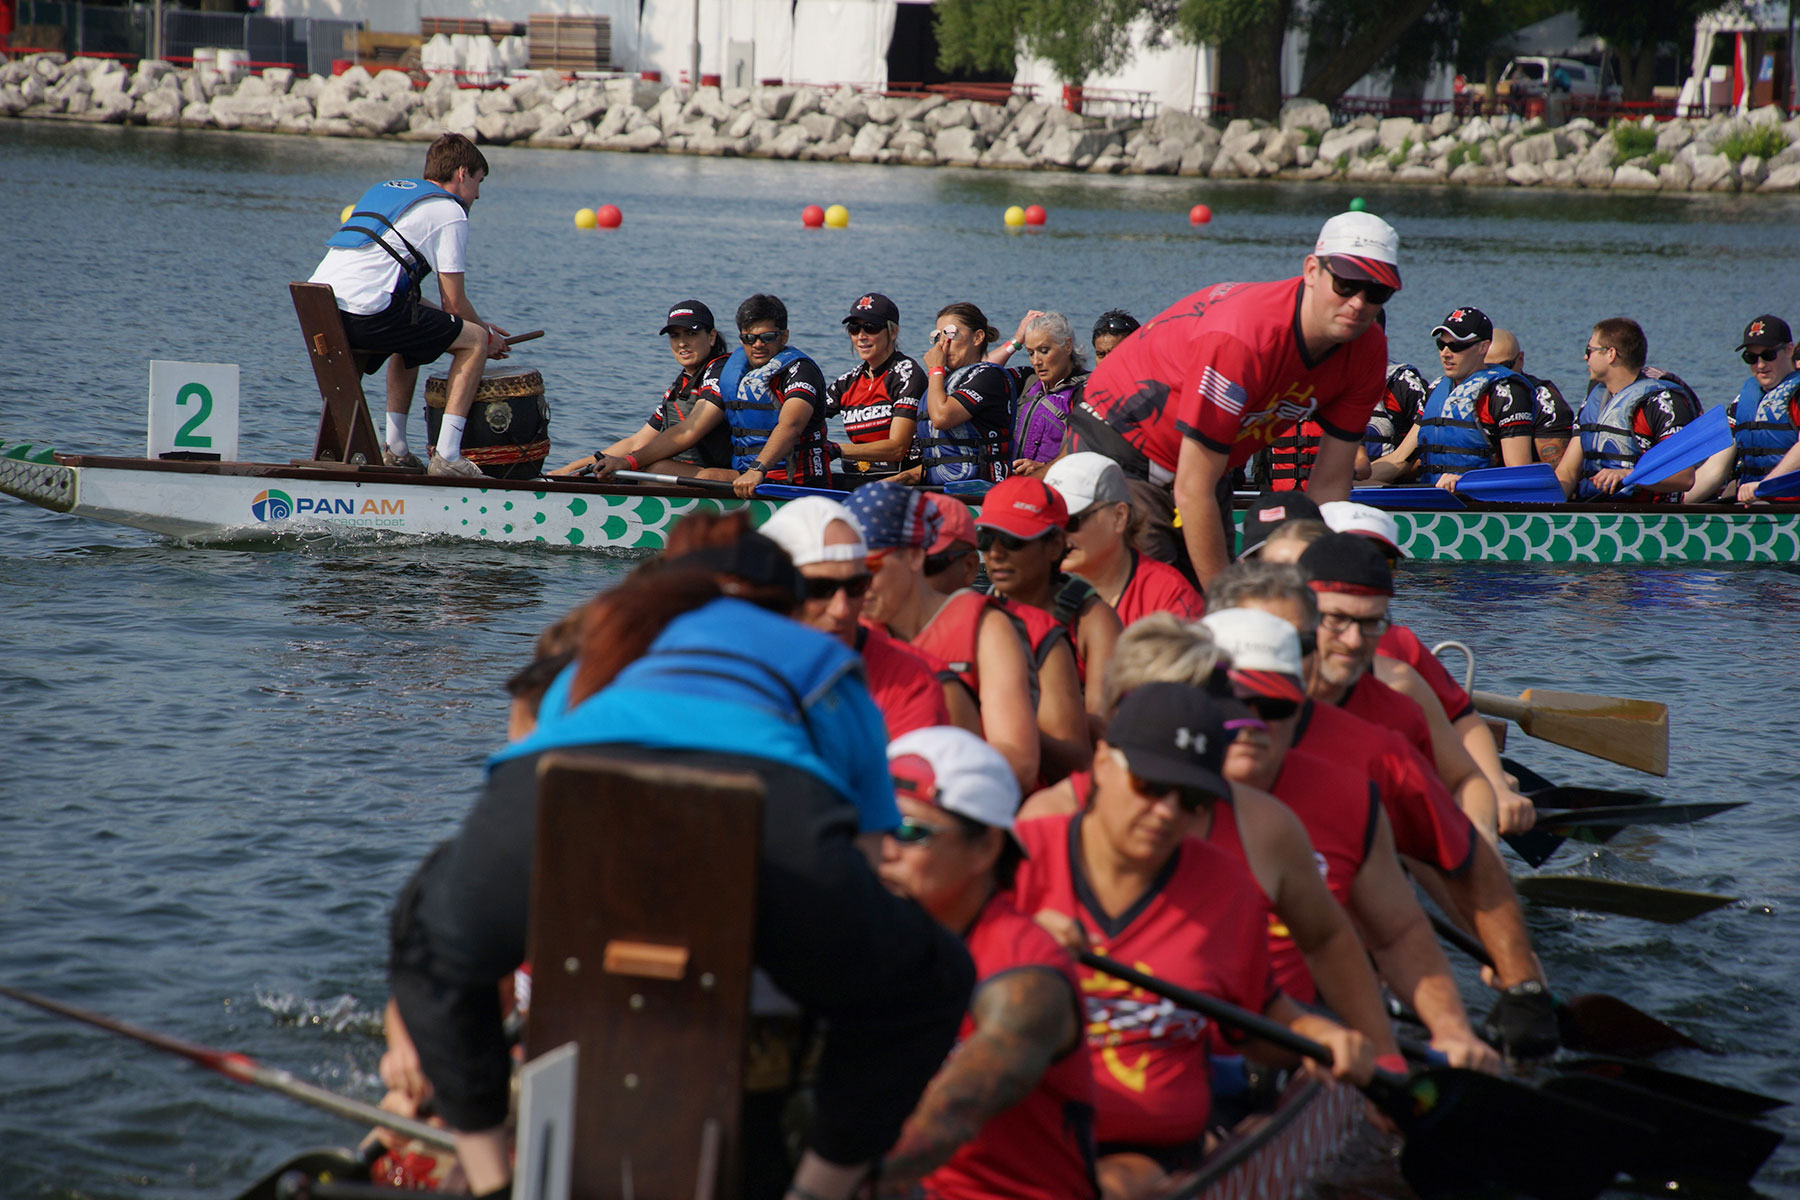 02_081118_dragonboat_318